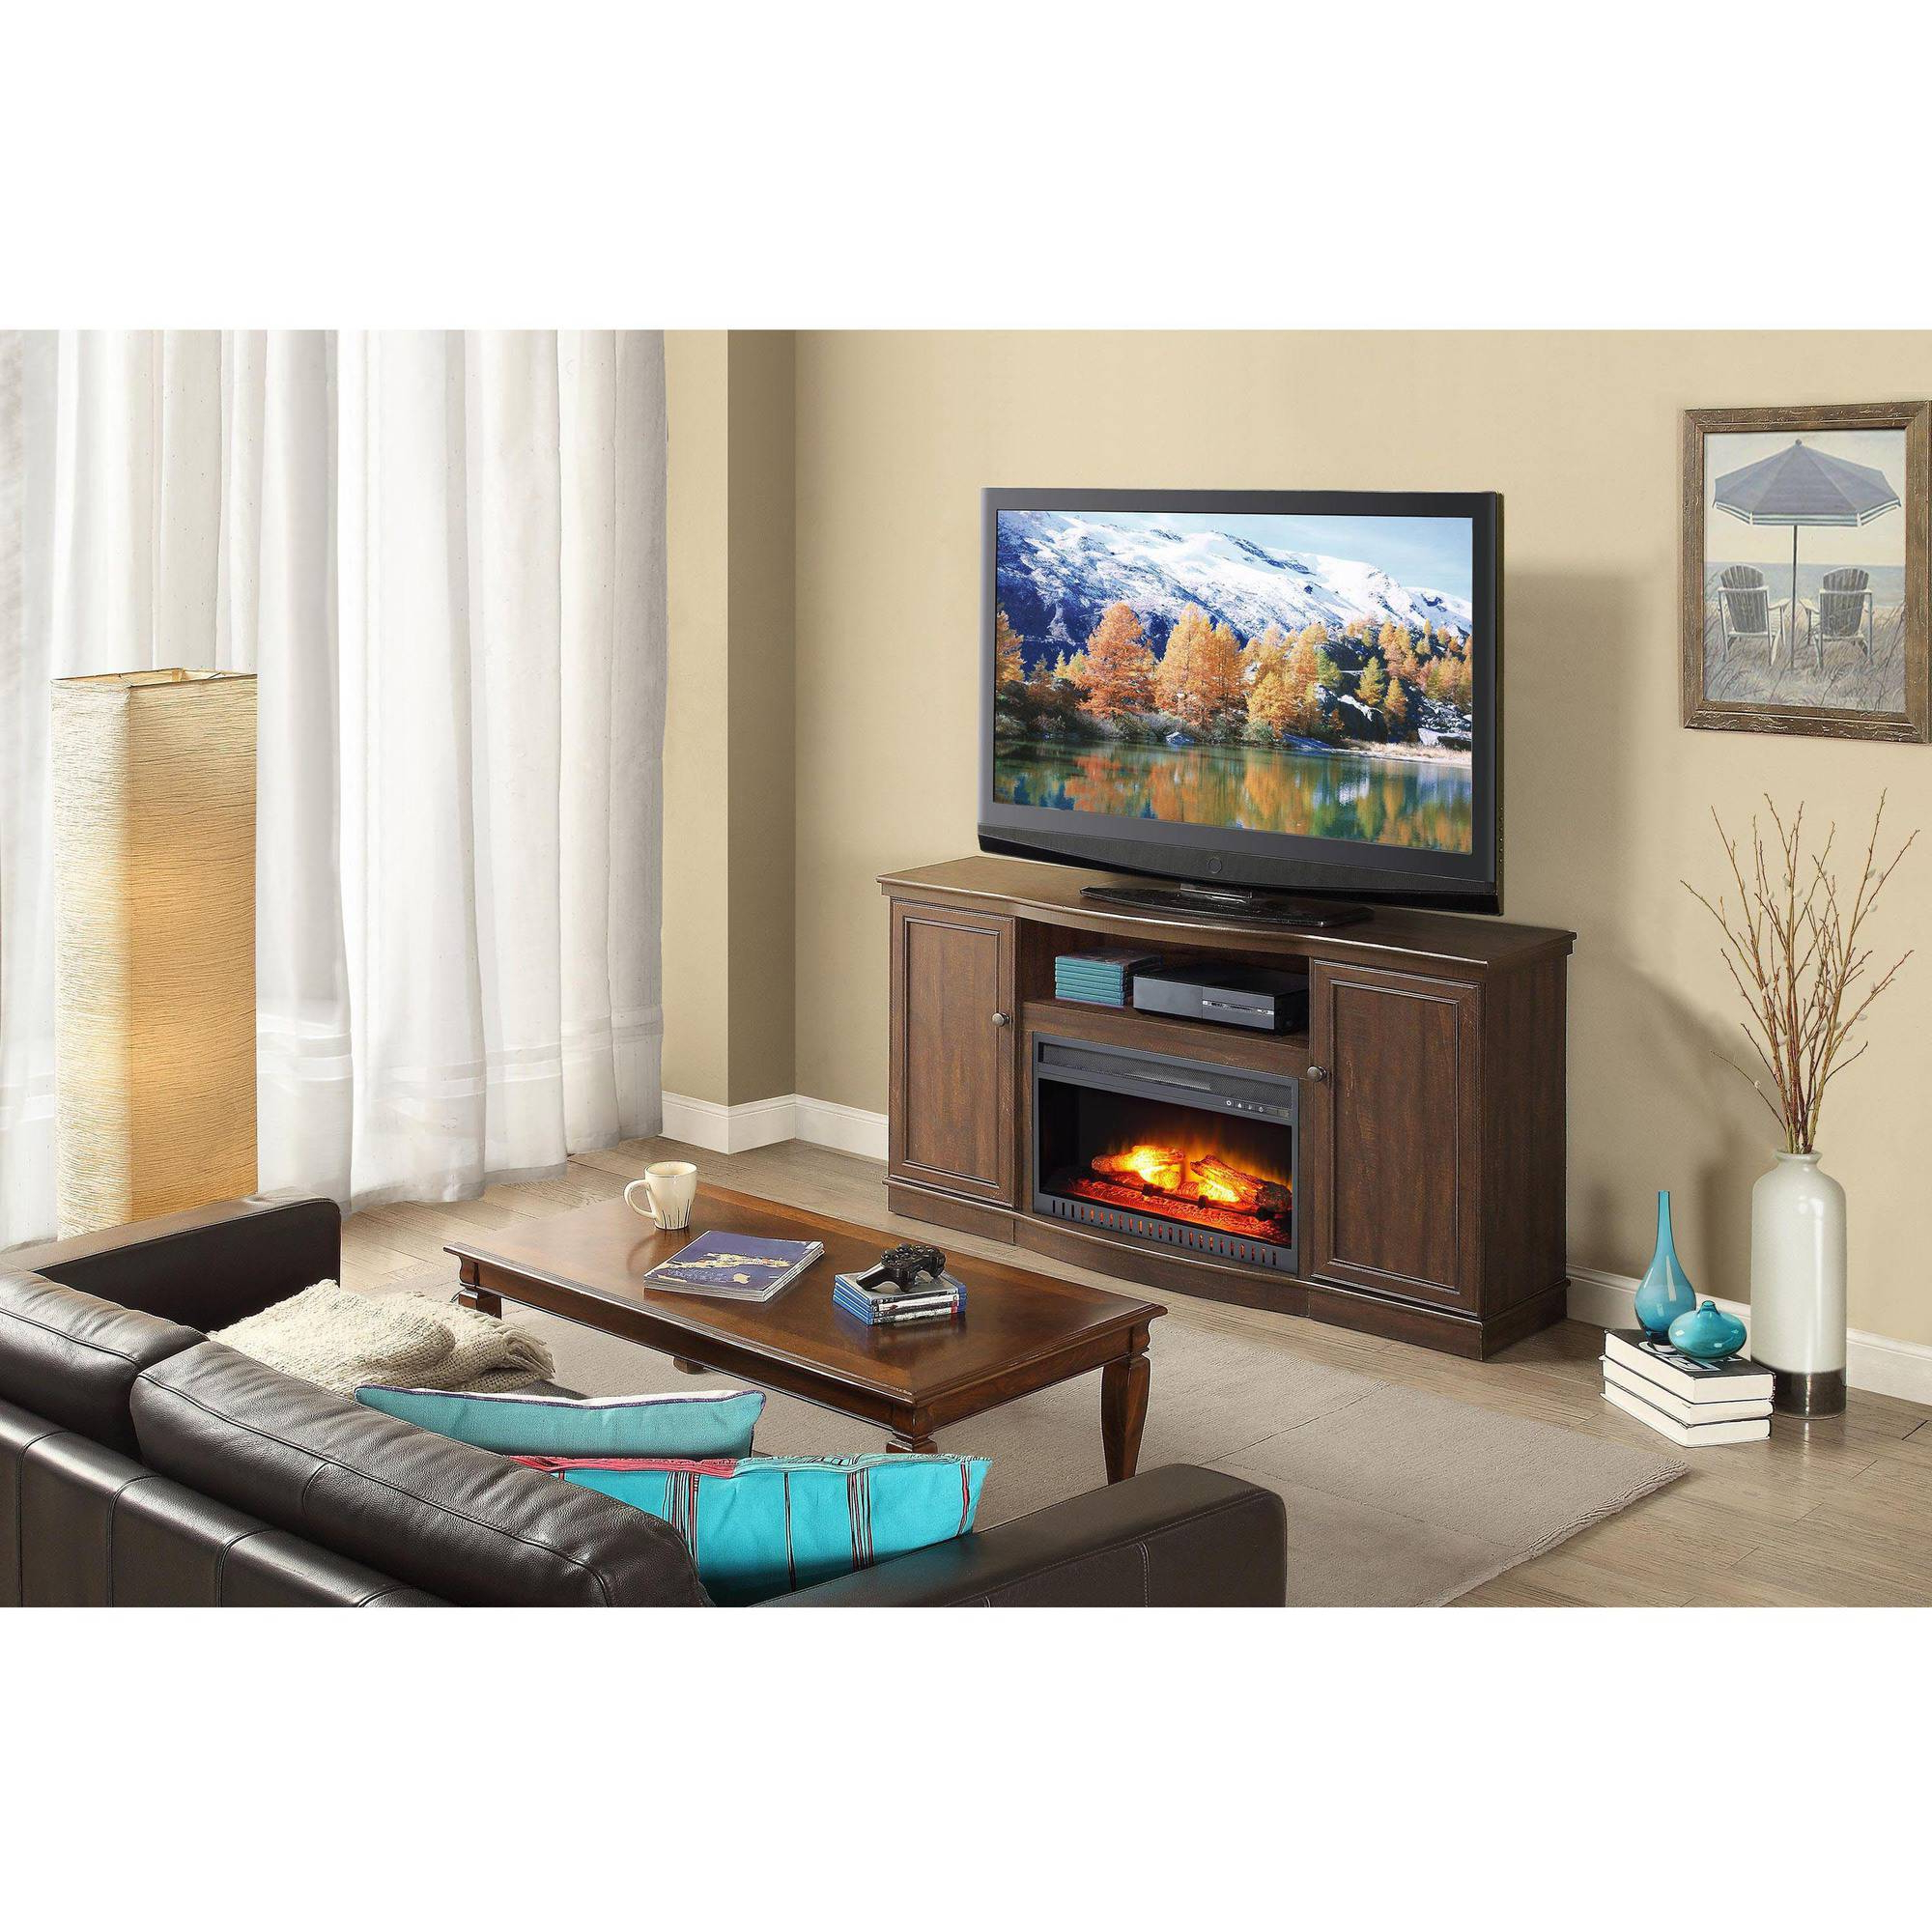 2018 Whalen Media Fireplace For Your Home Television Stand Fits Tvs Up To Inside Walton 72 Inch Tv Stands (Gallery 20 of 20)